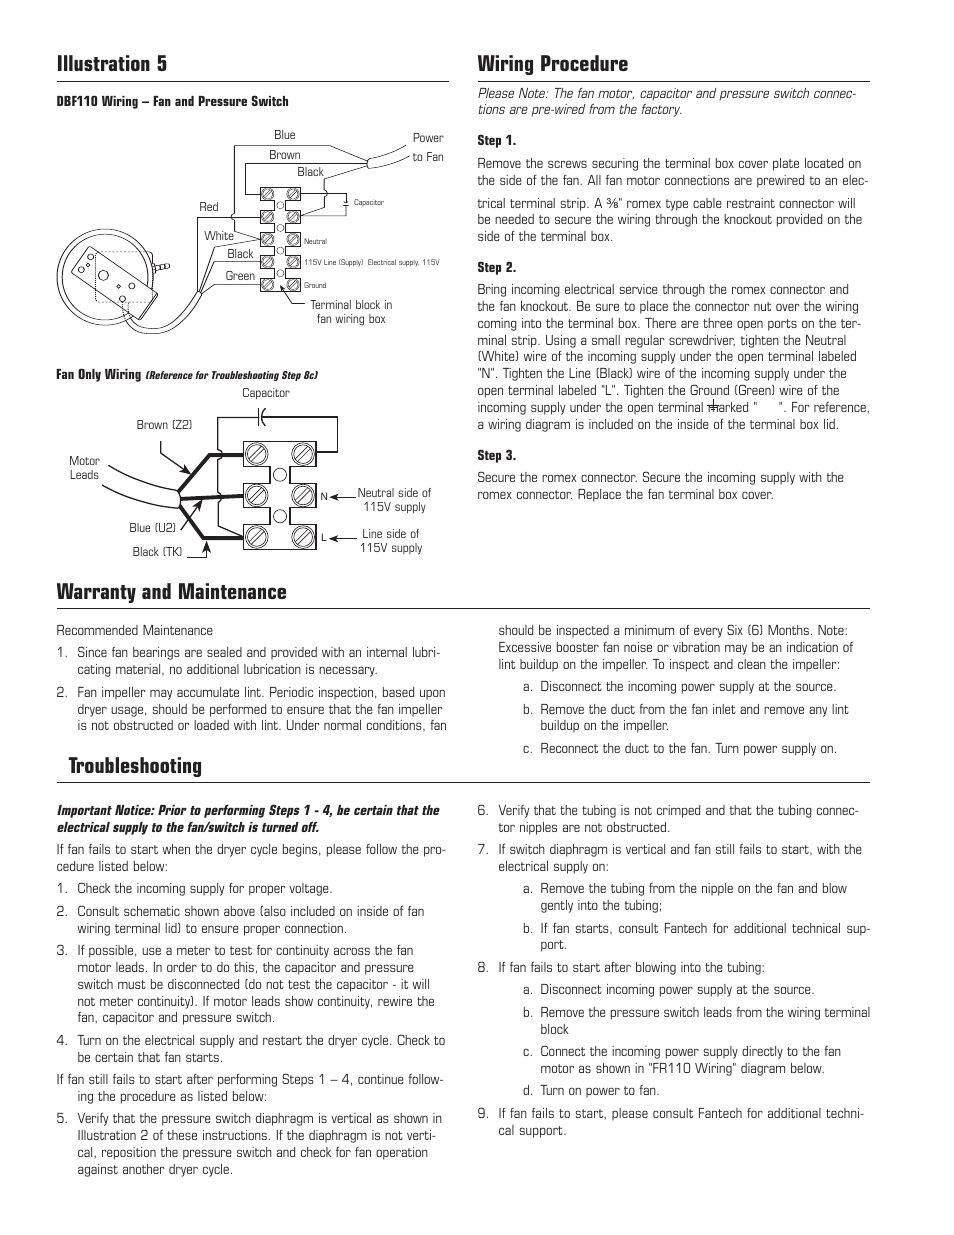 wiring procedure illustration 5 warranty and maintenance wiring procedure illustration 5 warranty and maintenance fantech dbf110 user manual page 4 12